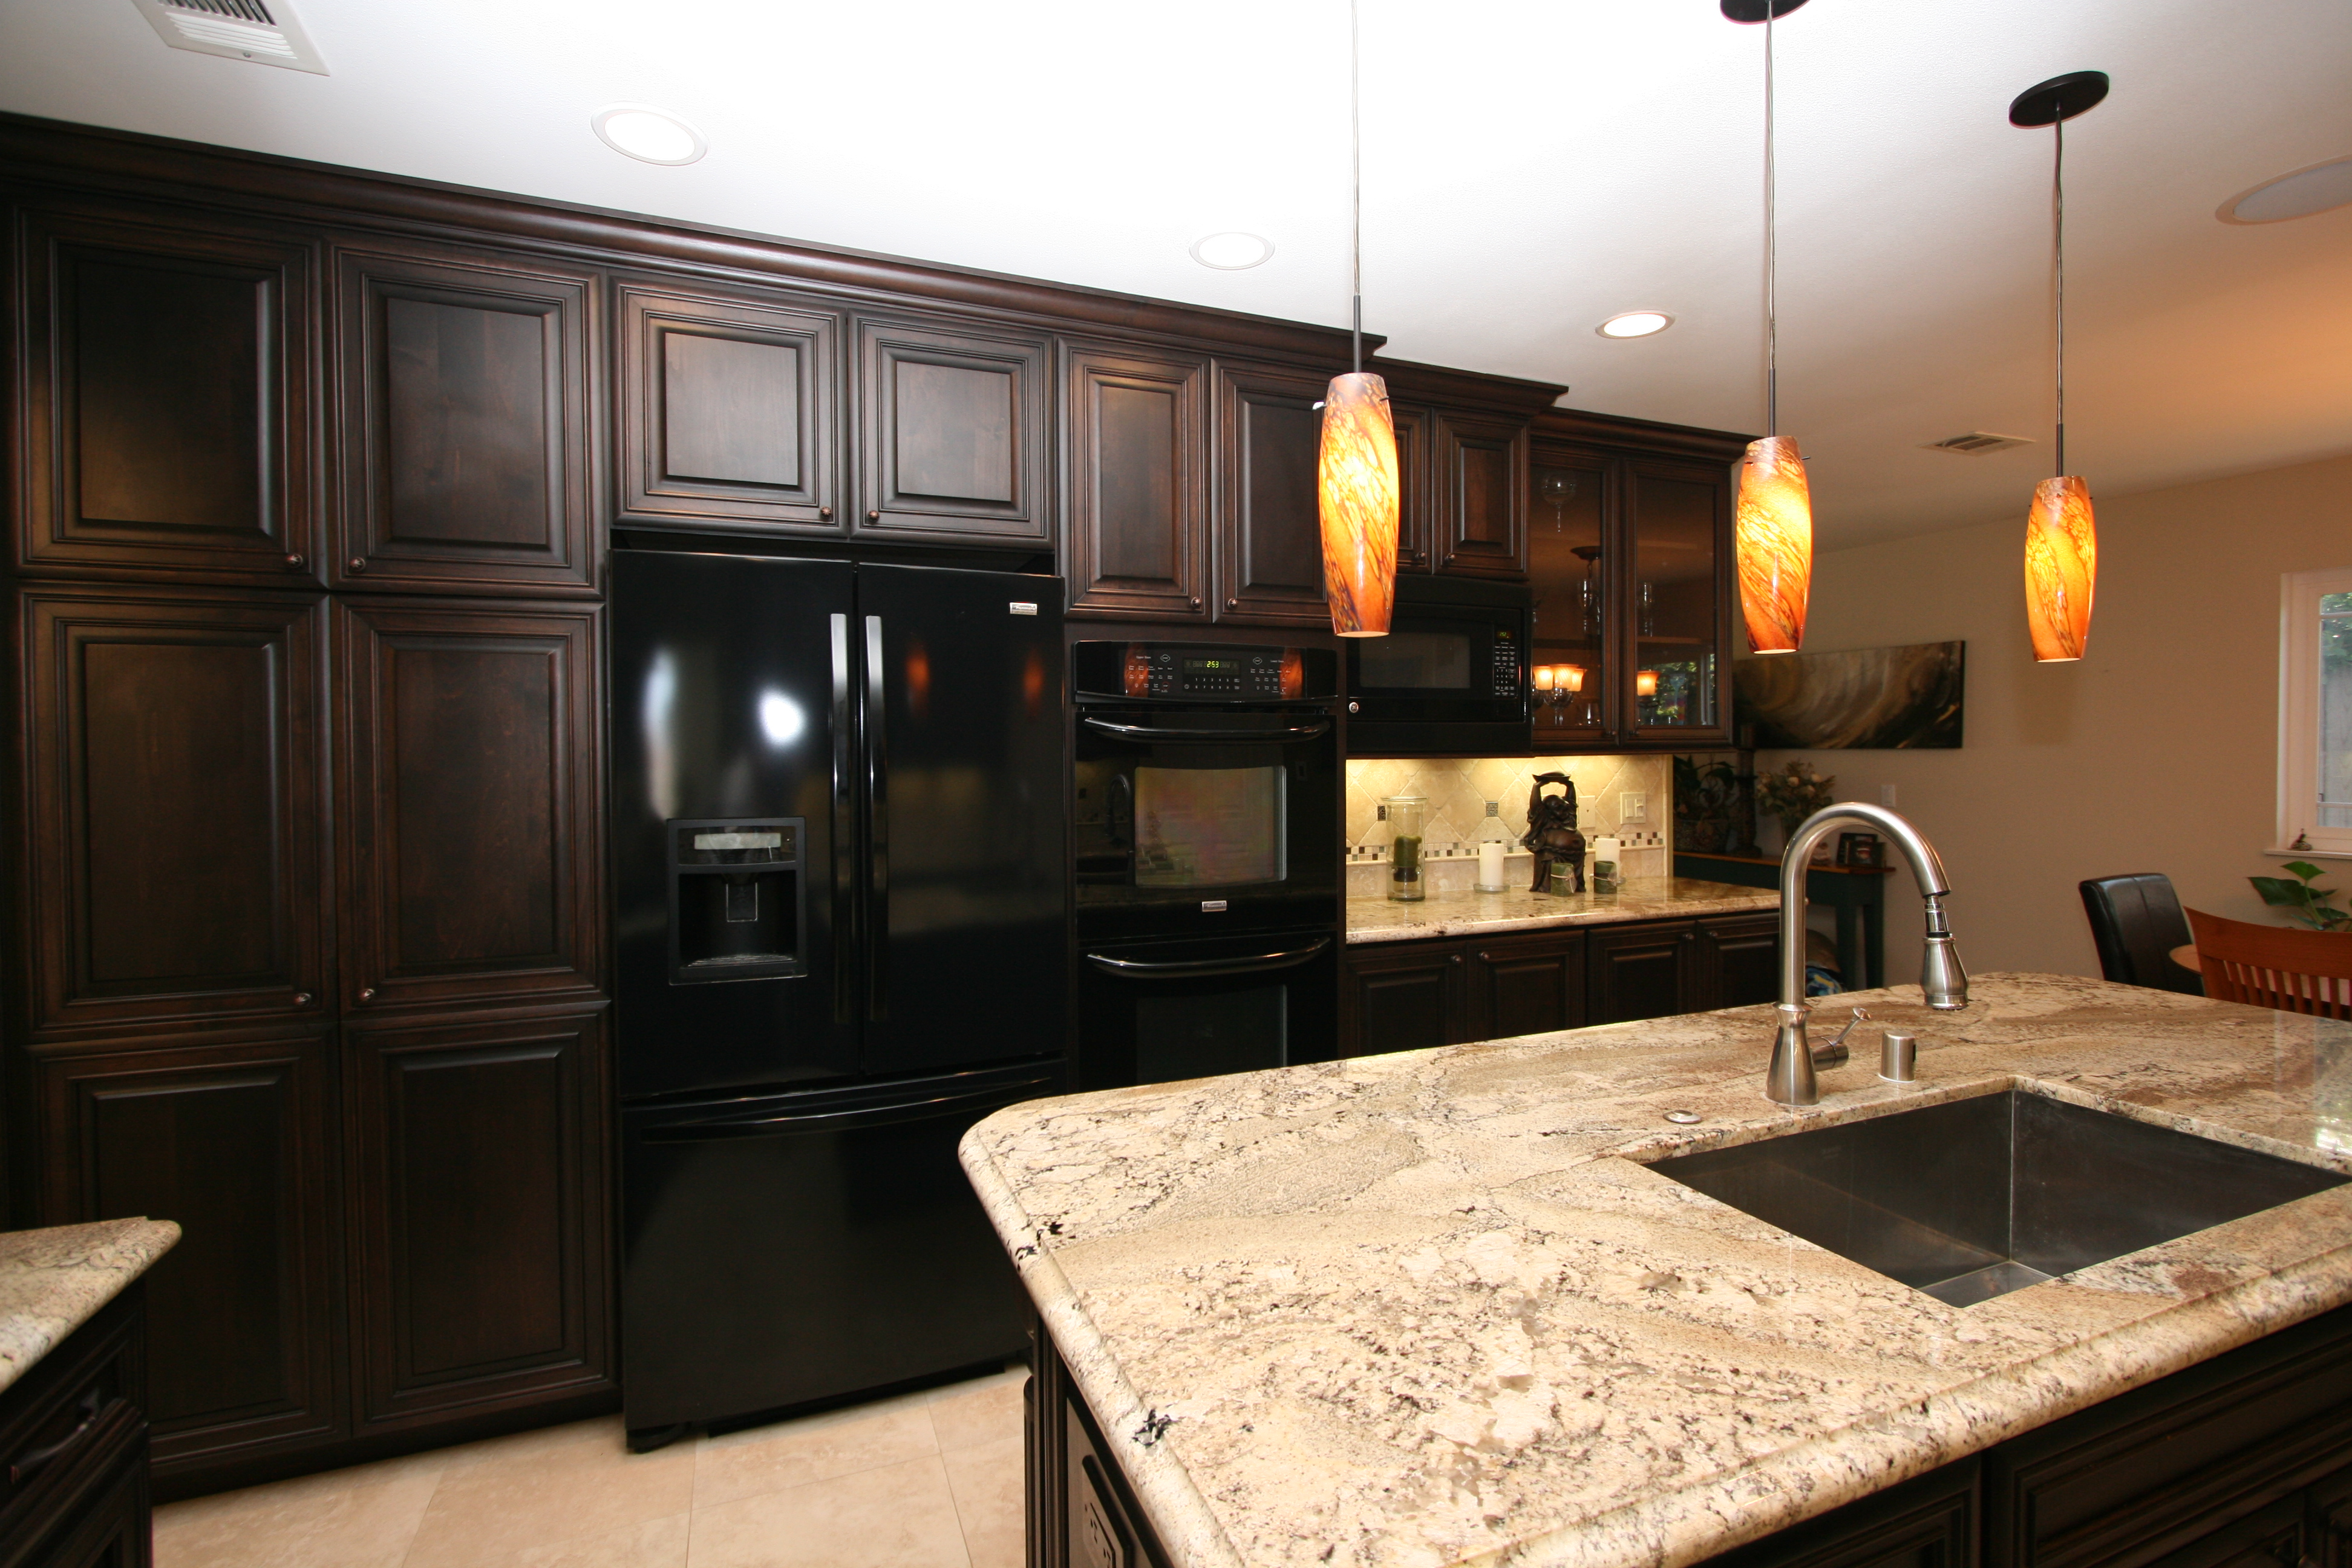 duffy home a traditional cherry kitchen for a modern family cherry kitchen cabinets Pendant lighting